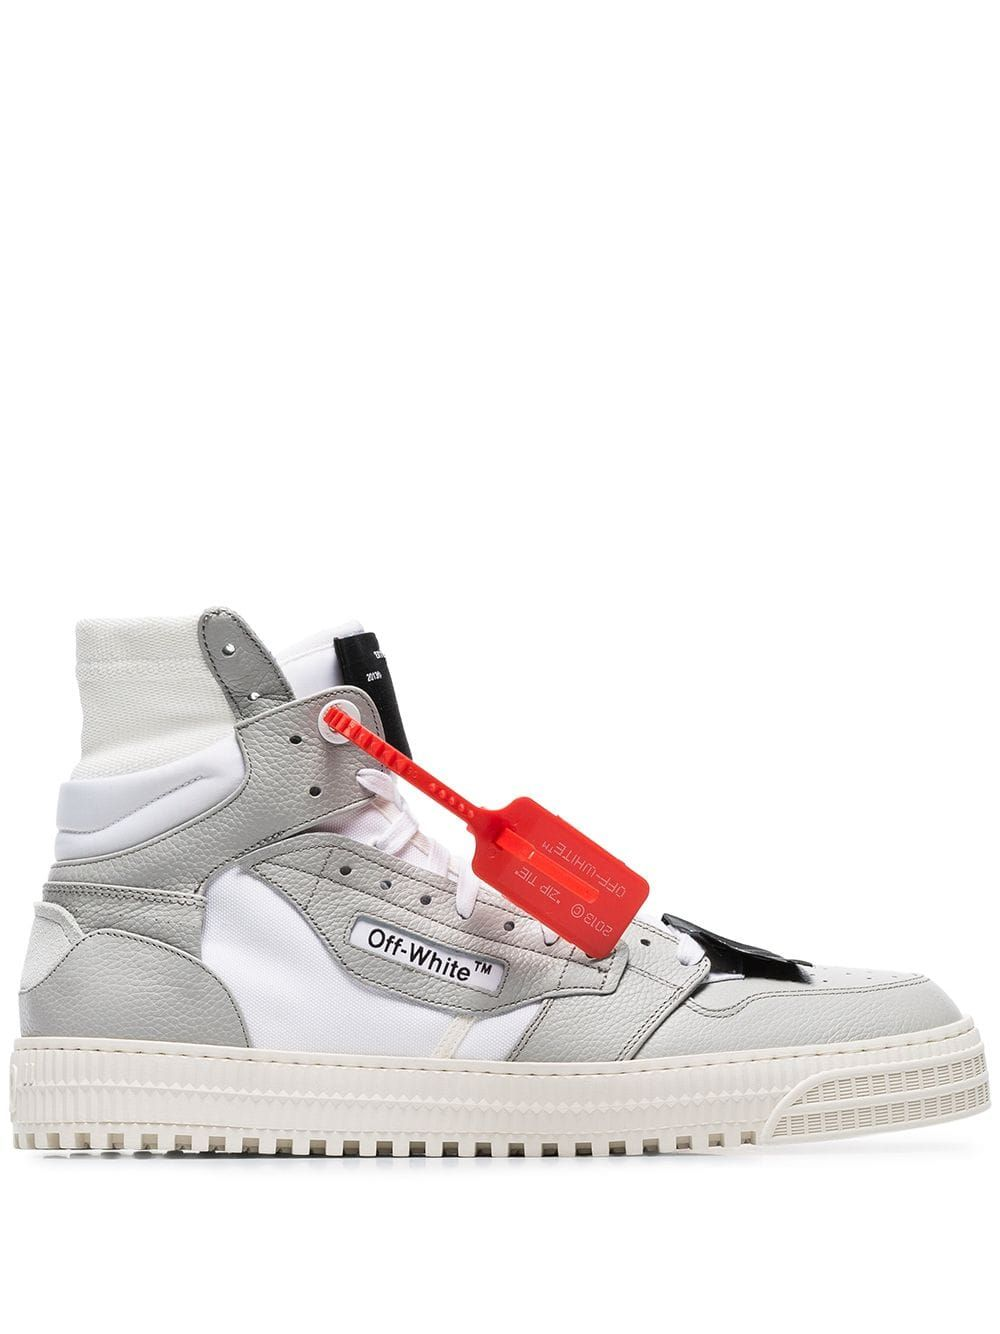 Off-White Court sneakers - Grey | Products in 2019 | Off